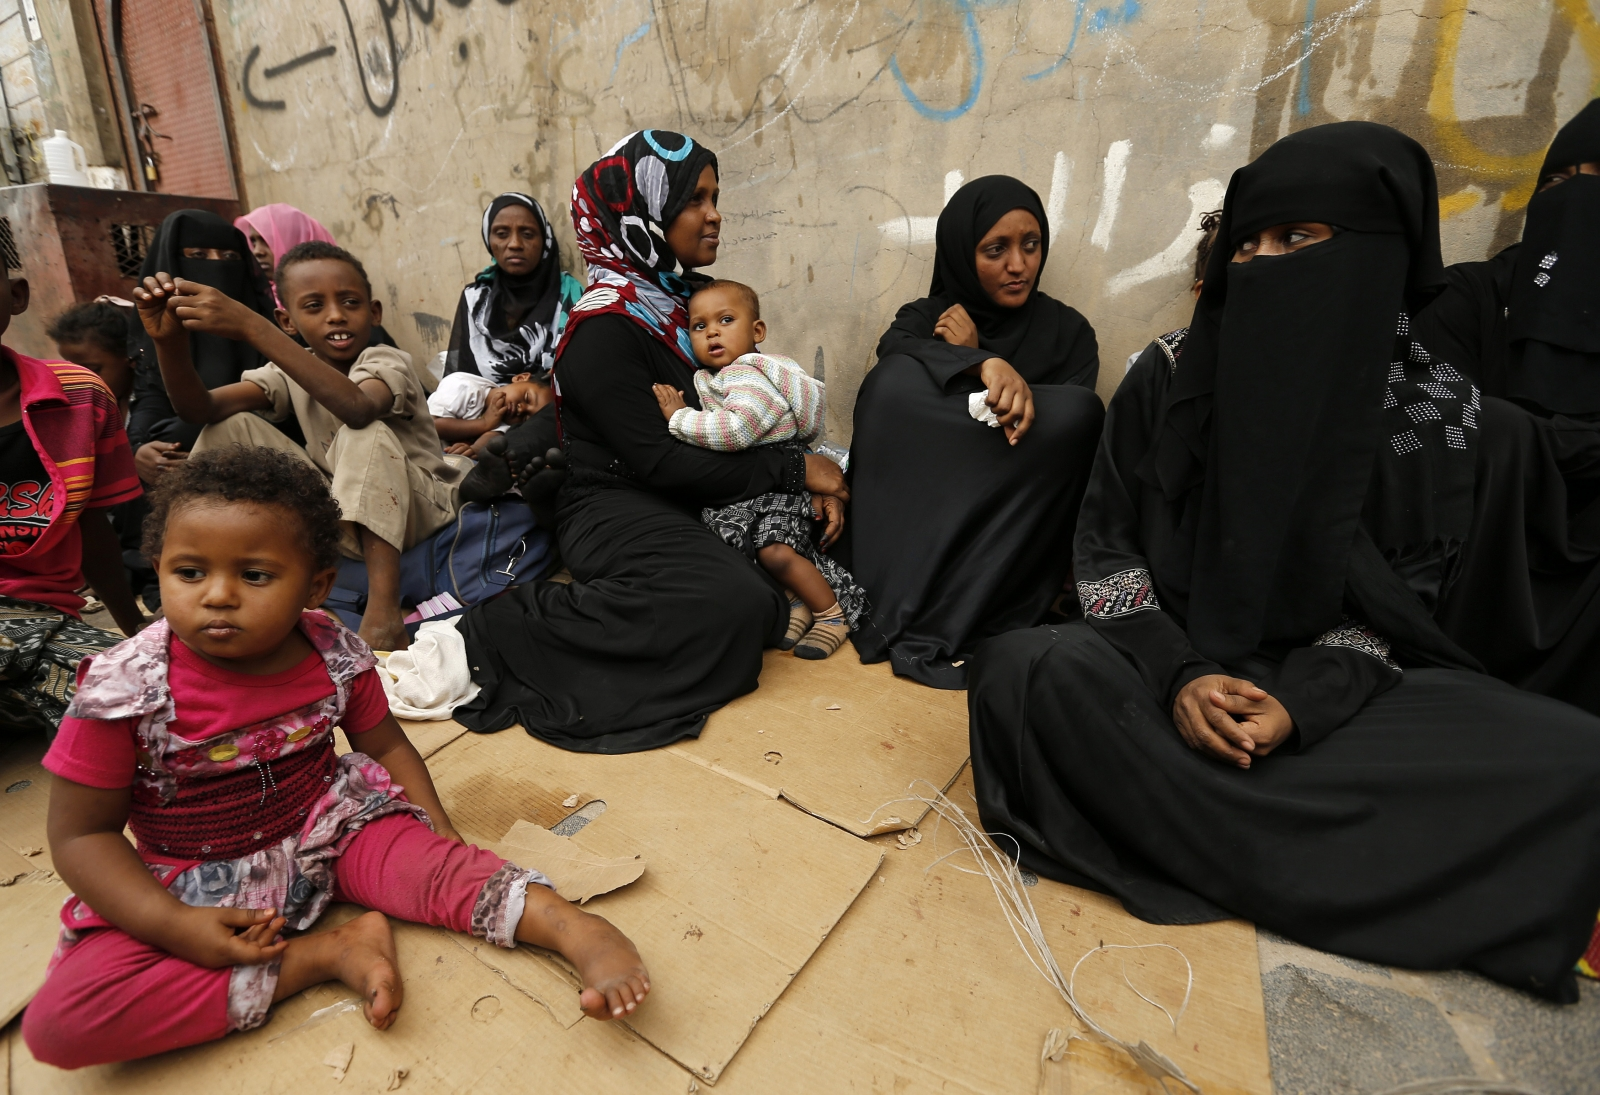 Eritrean asylum seekers Yemen